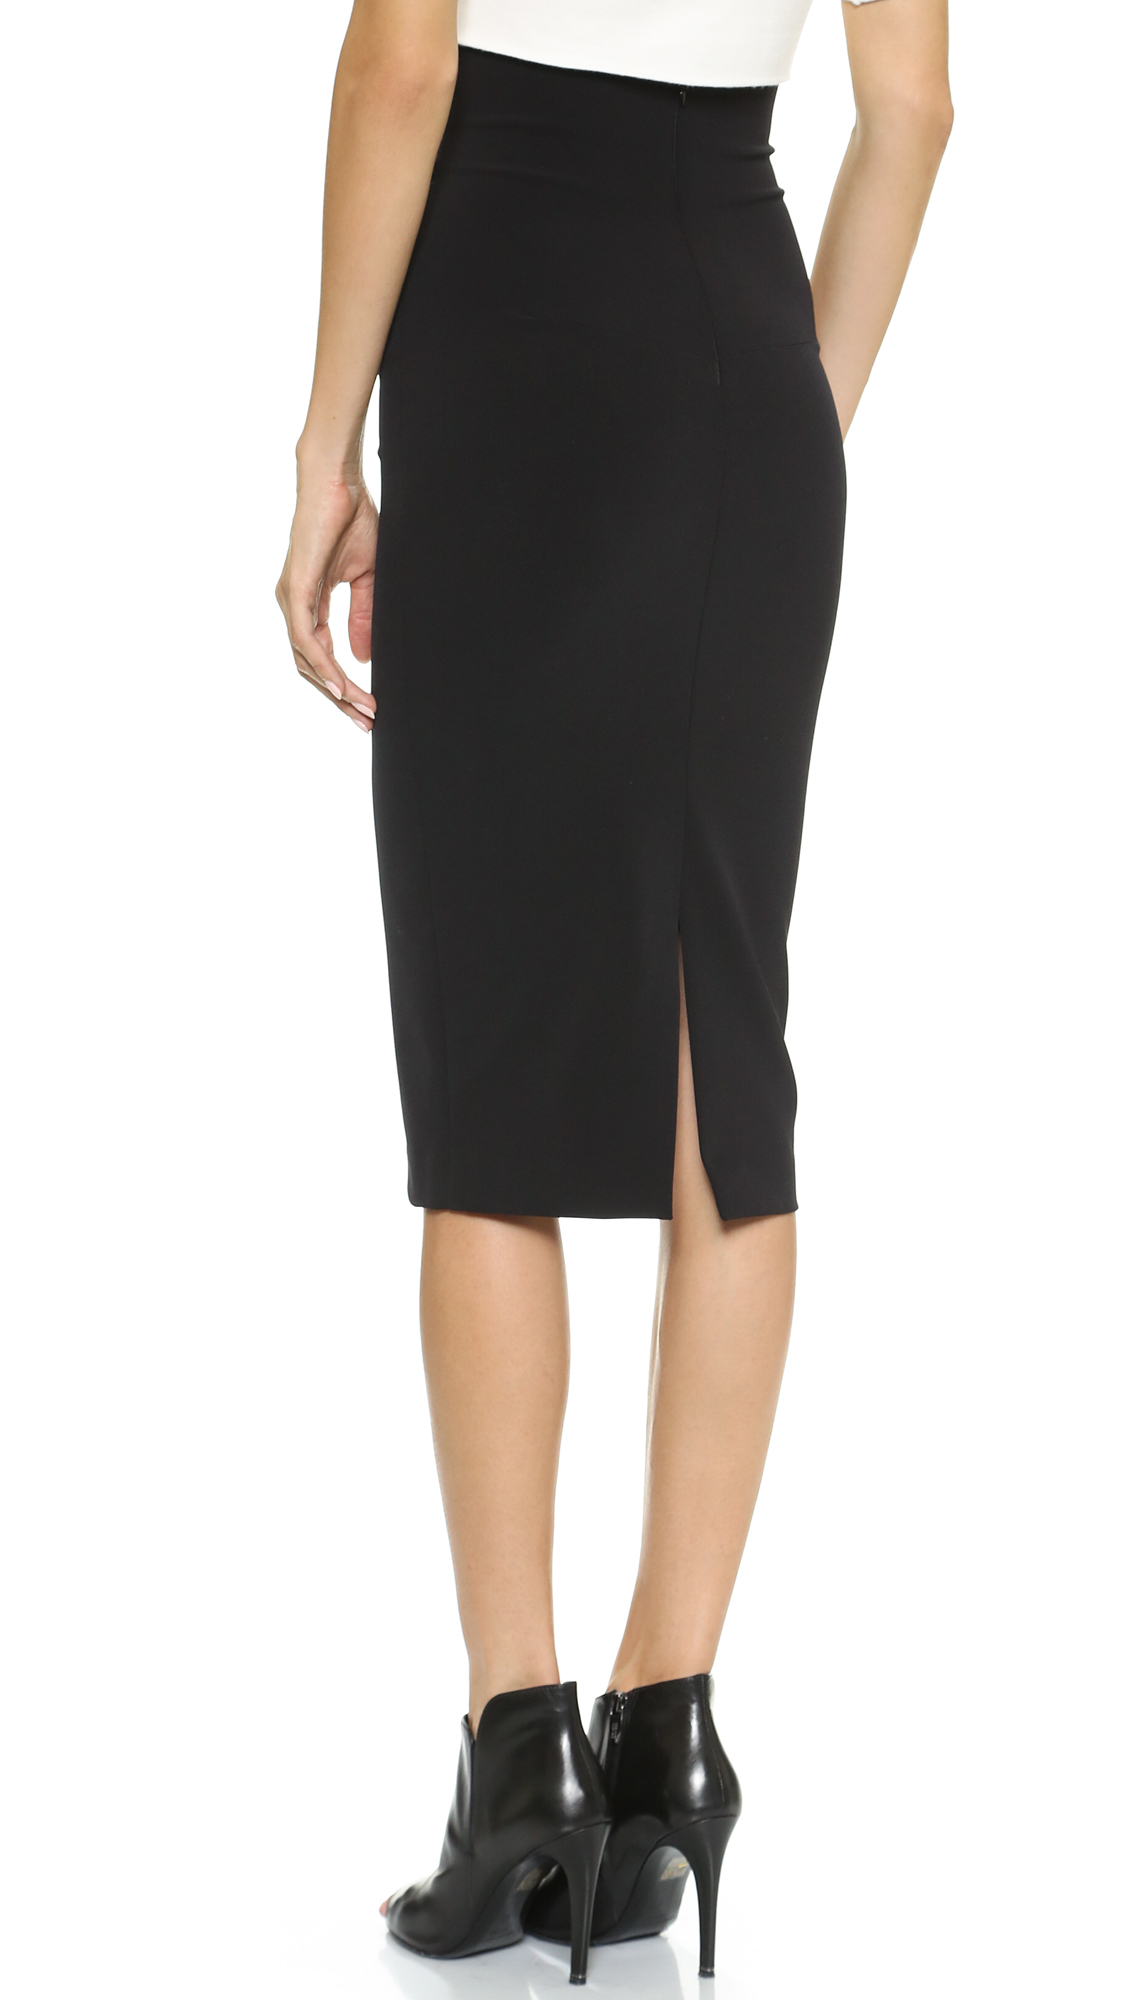 Nicholas Tech Stretch Pencil Skirt Black in Black | Lyst